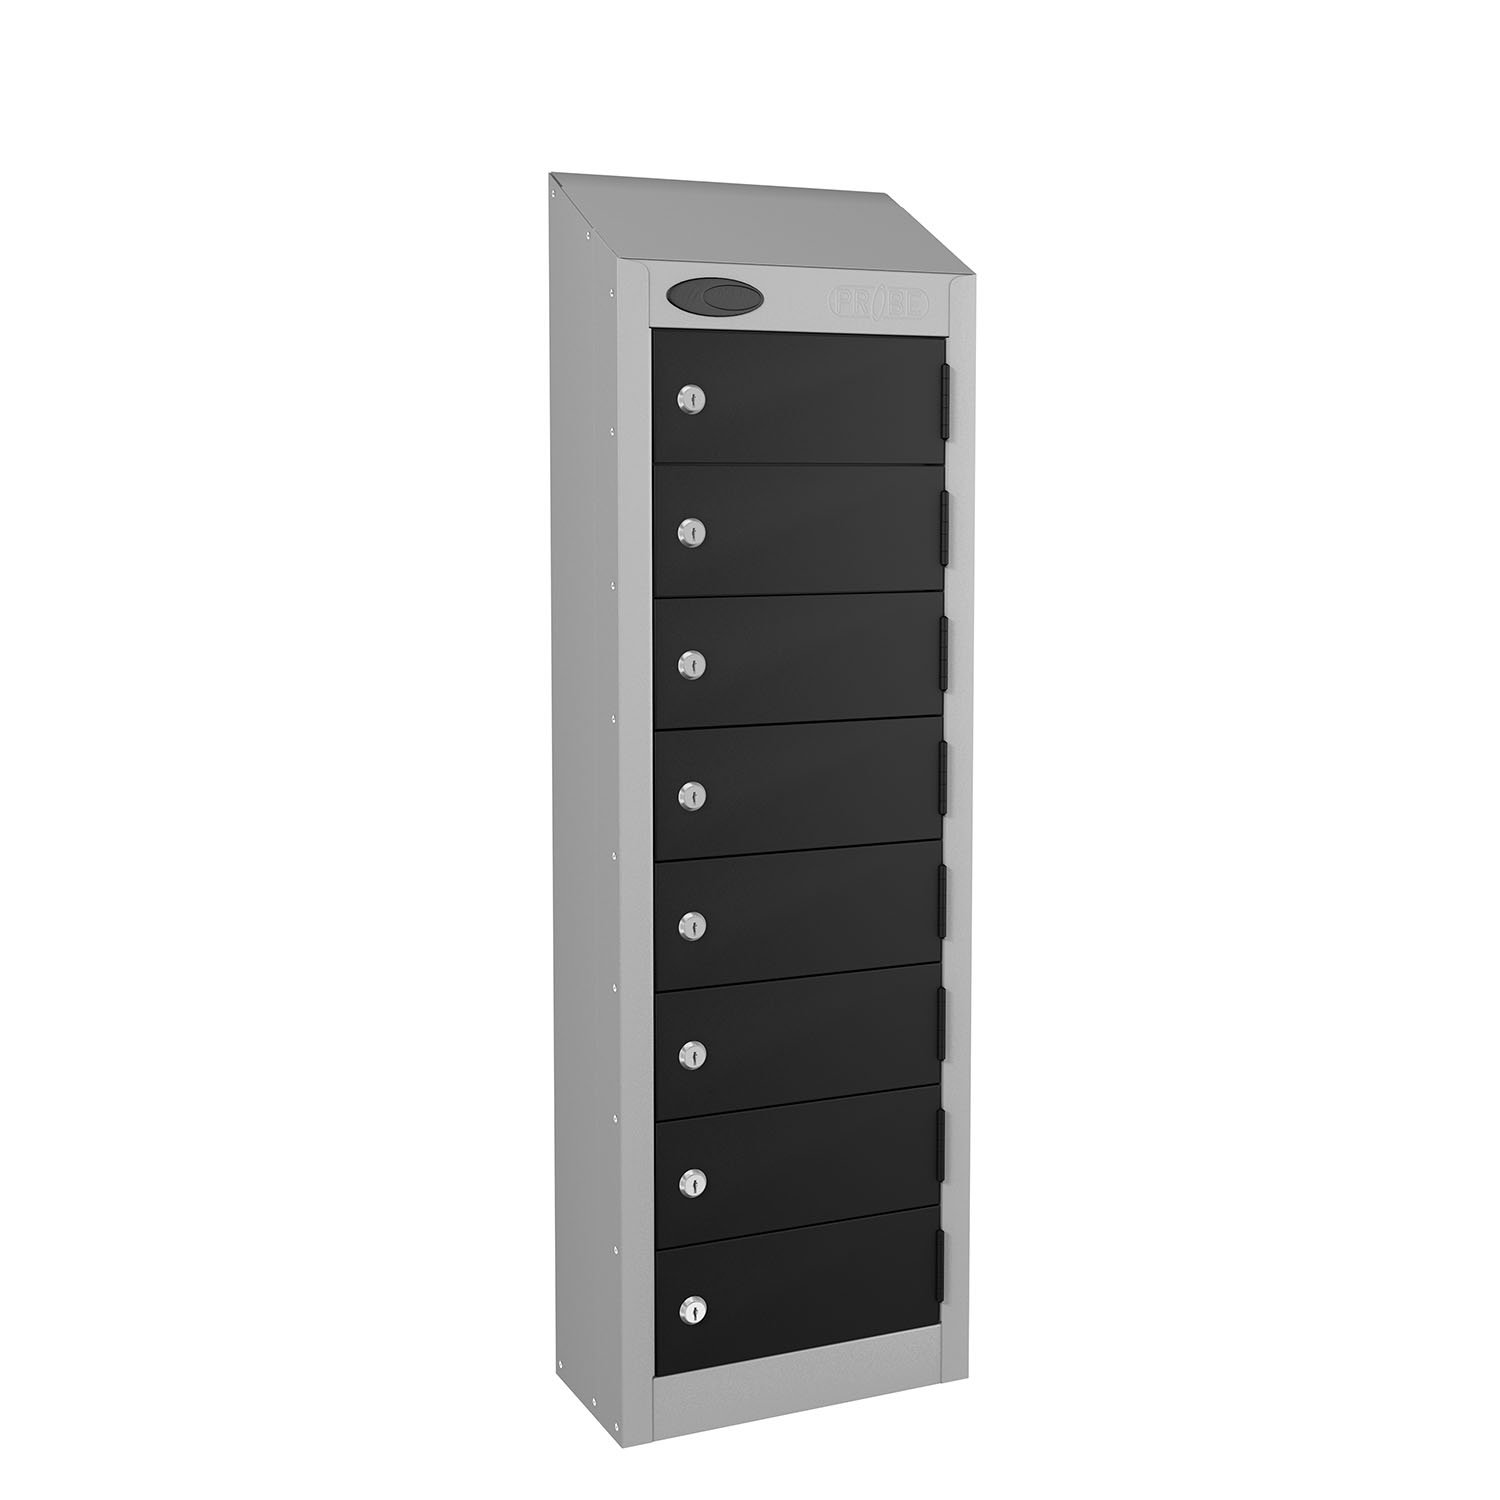 Probe 8 doors small compartment personal locker in black colour